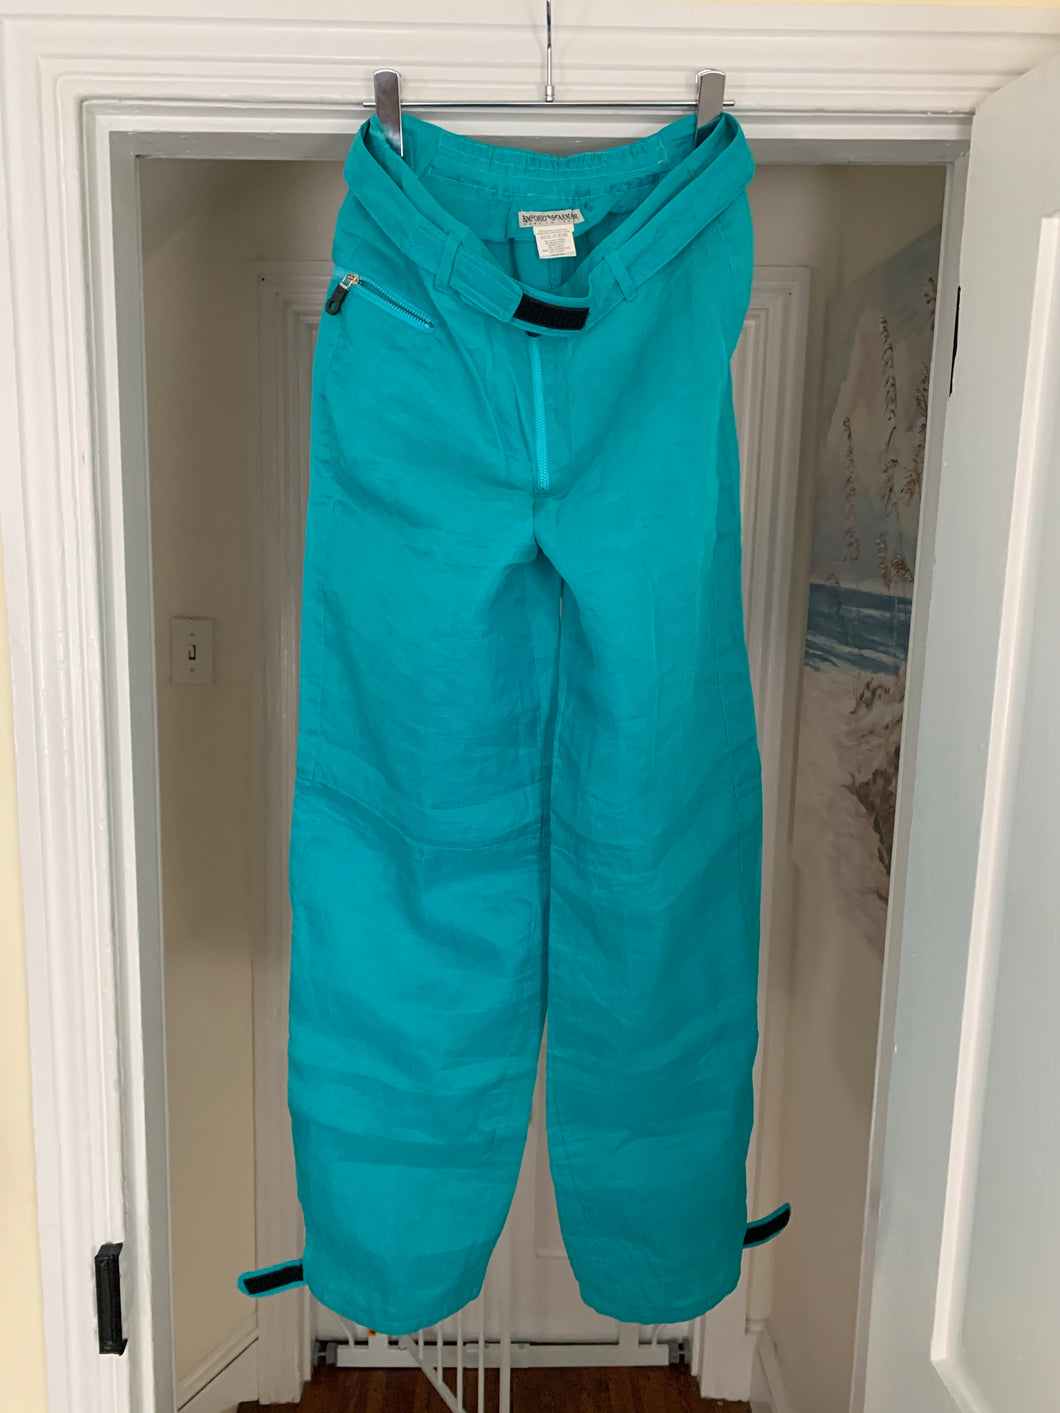 2000s Armani Teal Linen Technical Trousers with Lampo Zippers - Size M